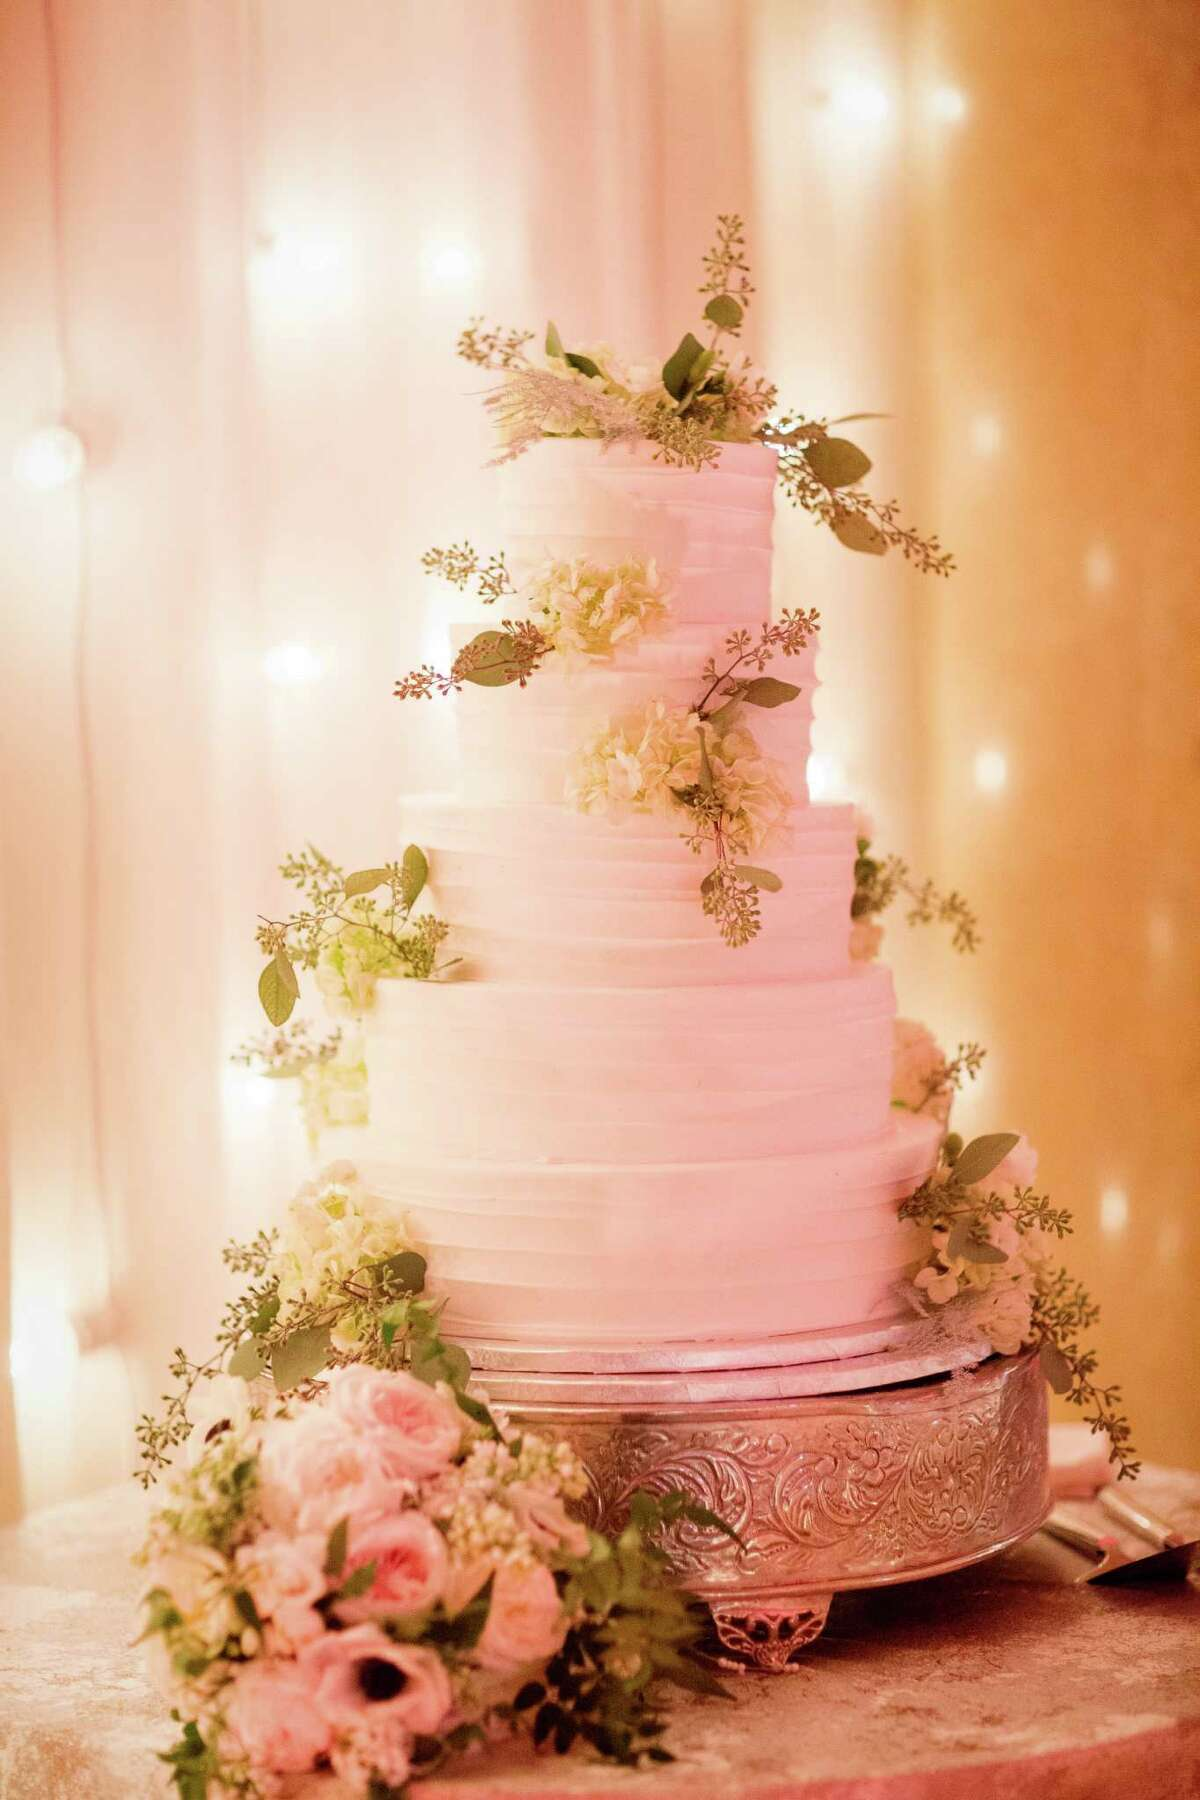 The wedding cake of Brittany and Andrew Green at their January 16, 2016 nuptials. (Tracey Buyce Photography)